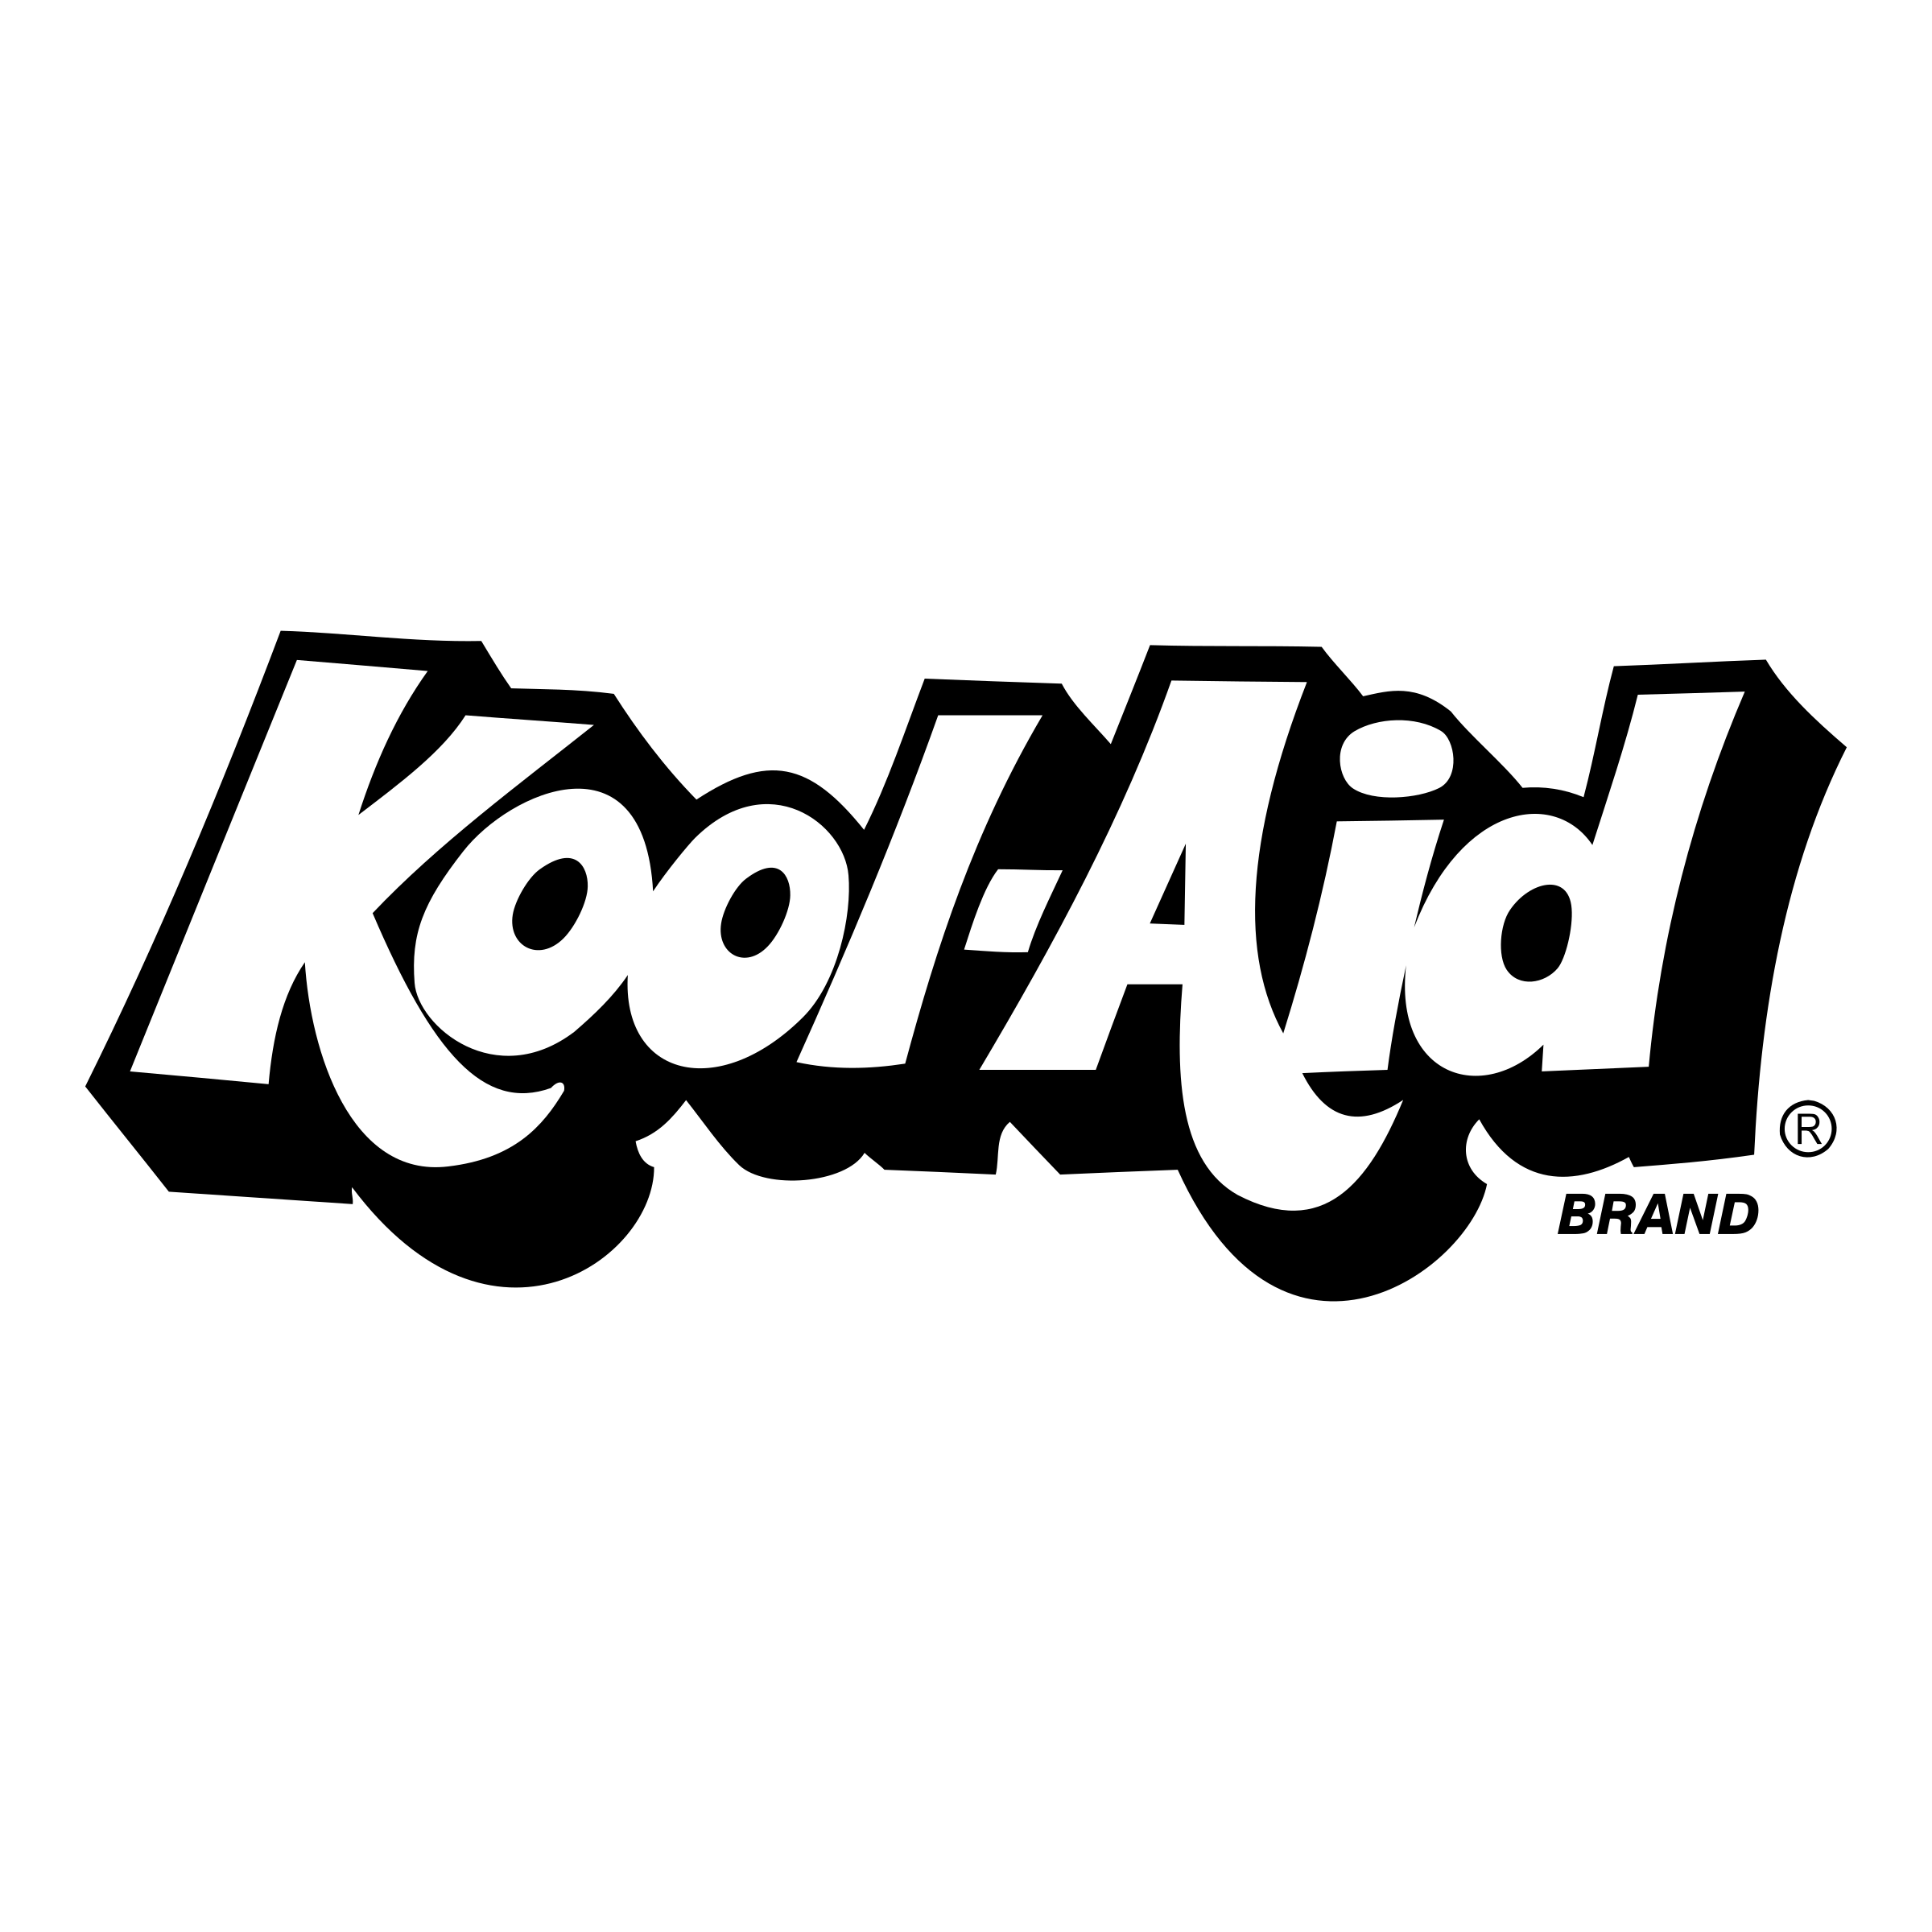 Kool Aid Logo PNG Transparent & SVG Vector - Freebie Supply